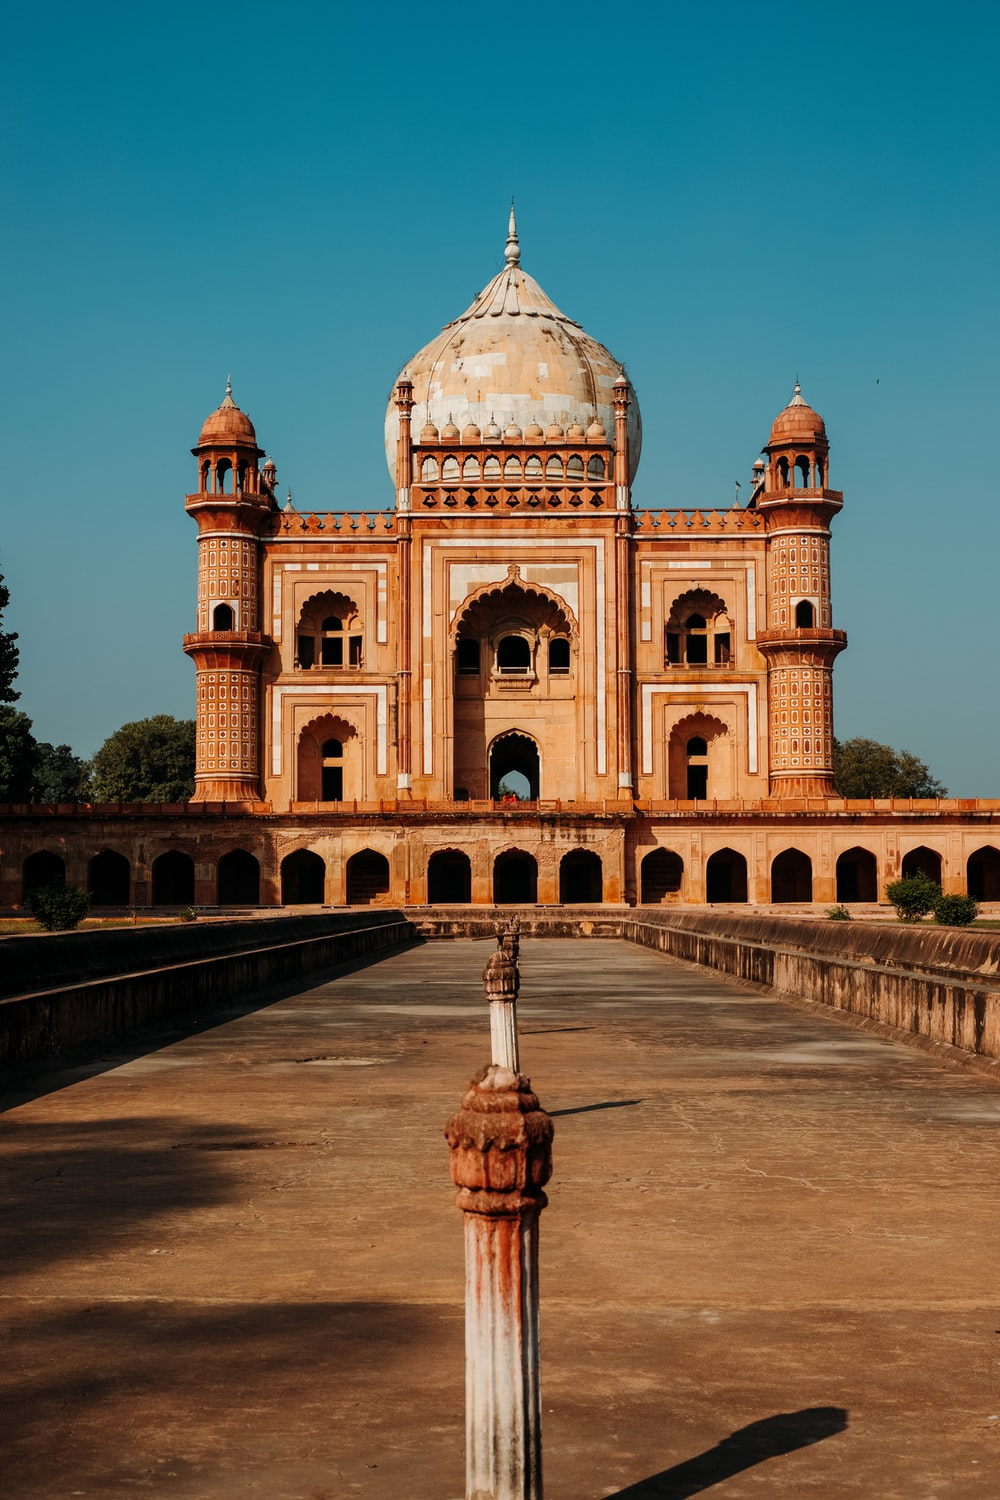 Safdarjung's Tomb in New Delhi, India